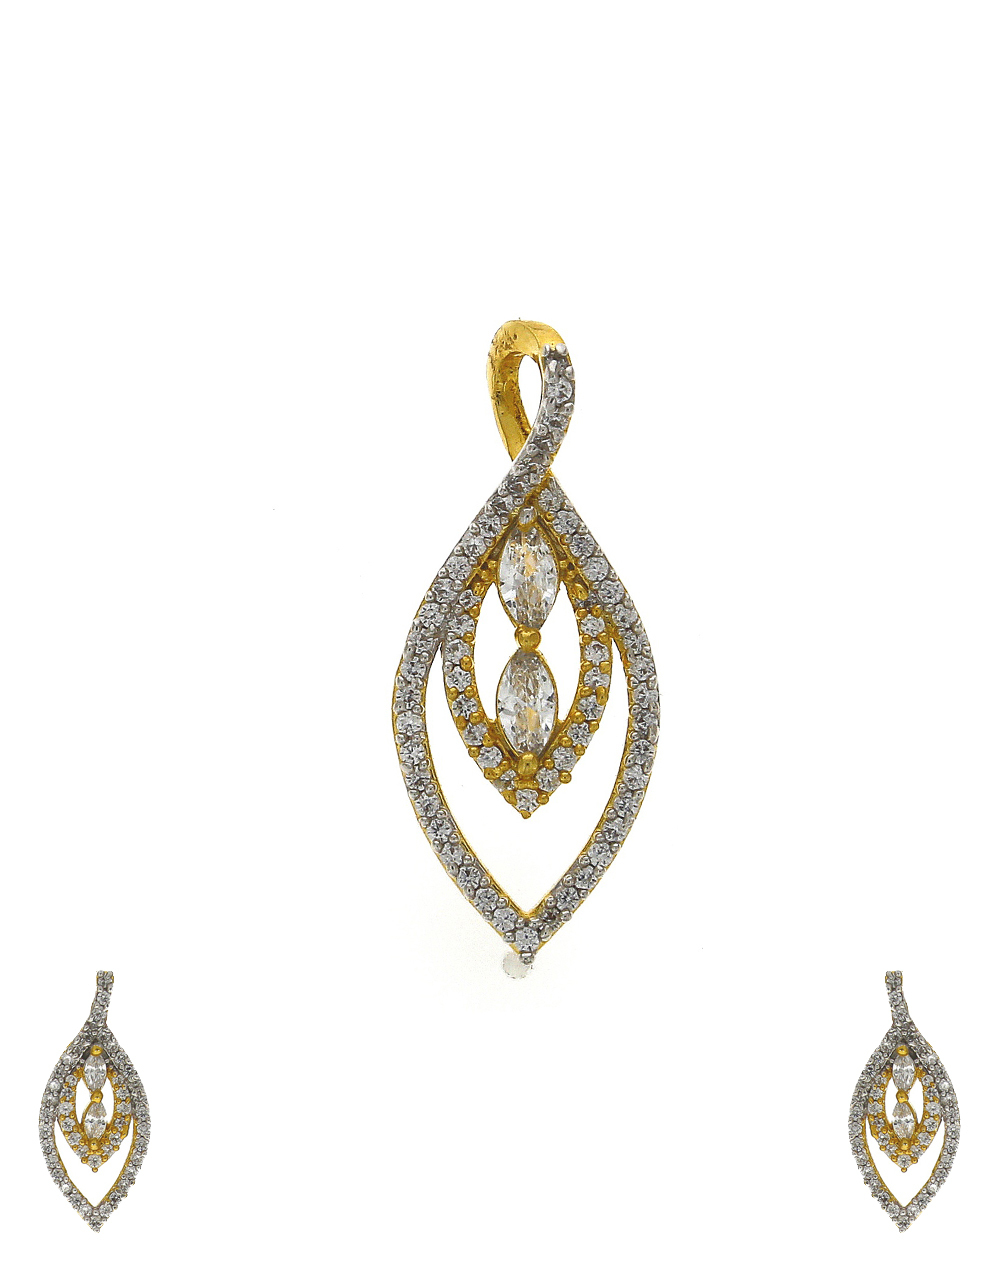 Stylish leaf design gold-plated stones studded pendant with earrings set